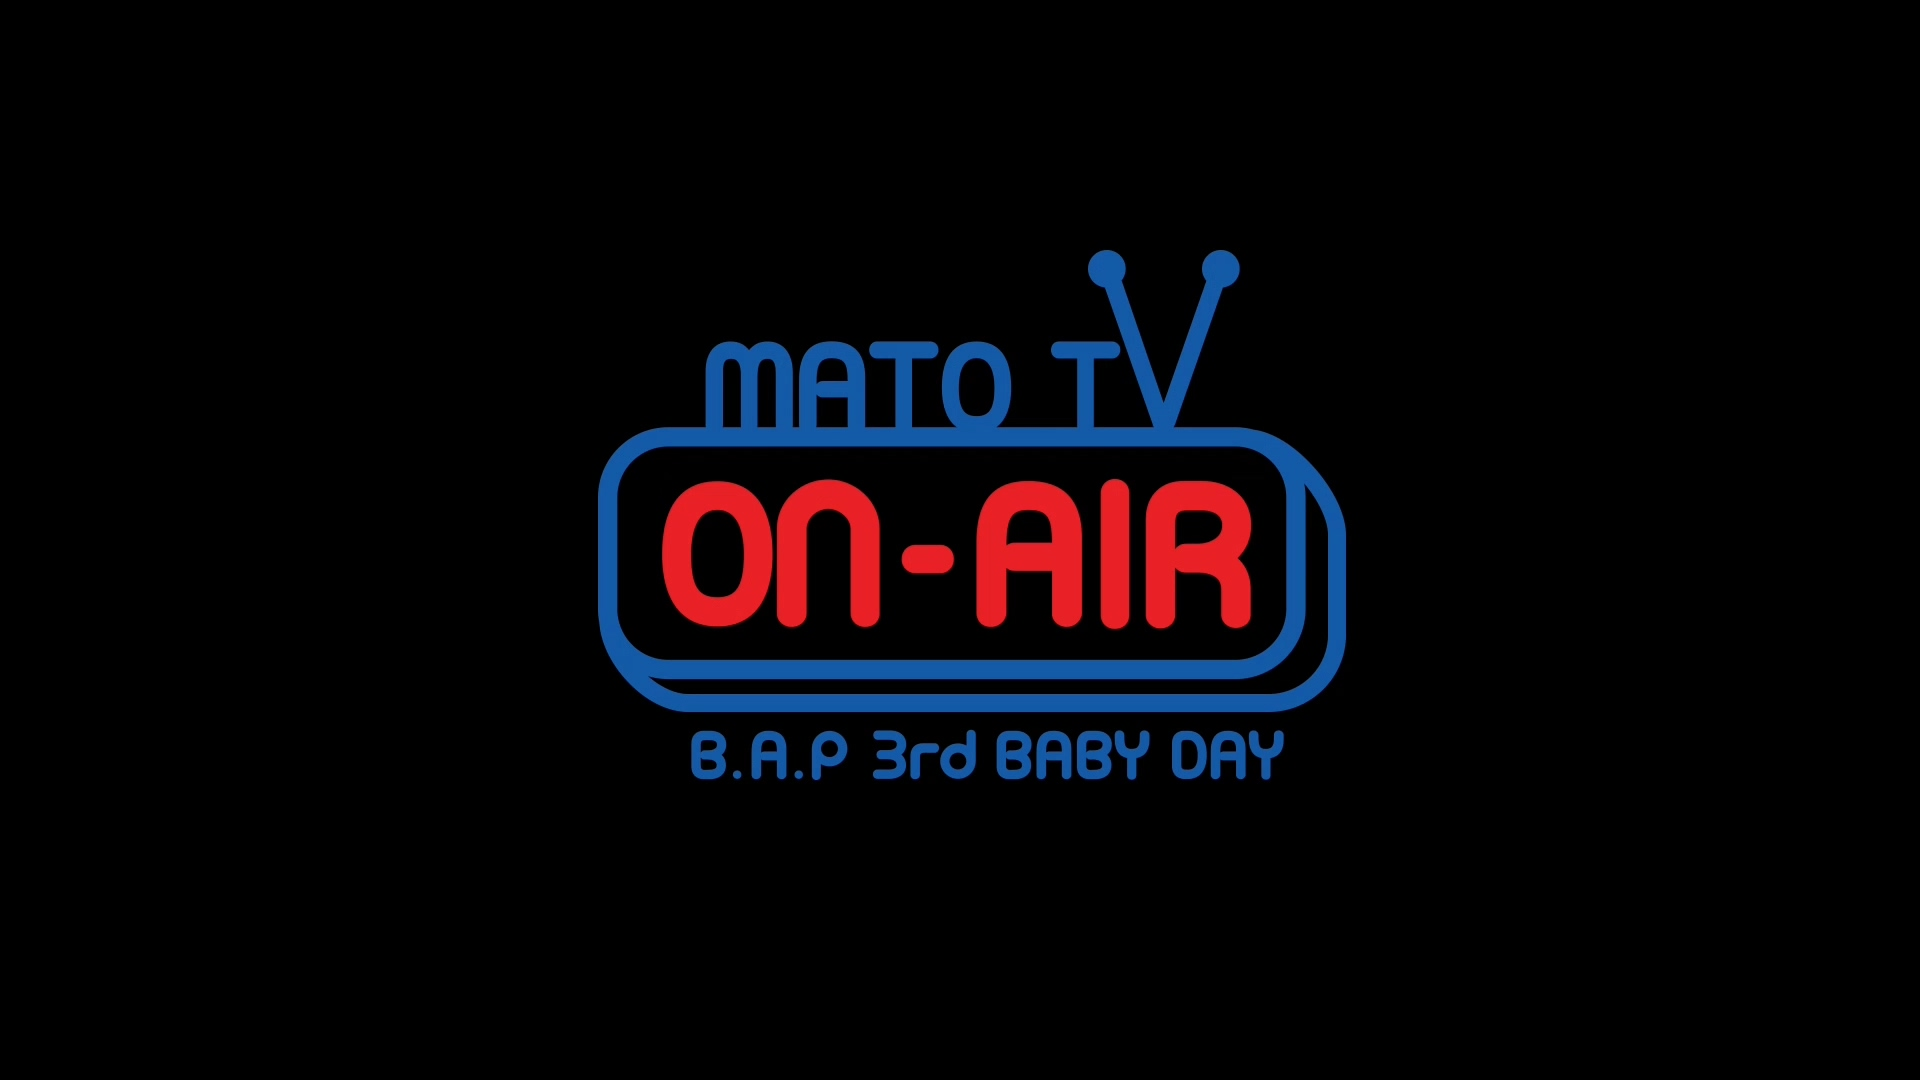 [MATO TV ON-AIR] BEHIND STORY